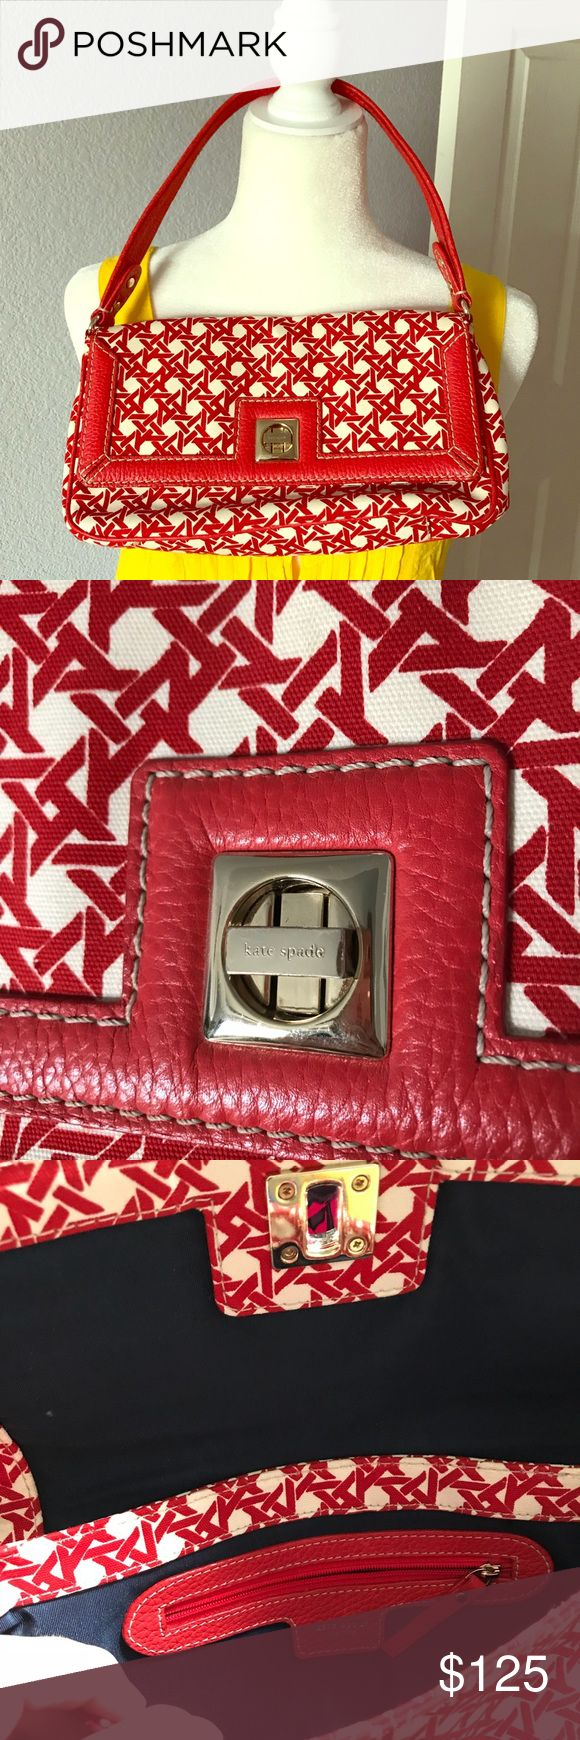 🌟PRICE DROP TODAY ONLY🌟 KATE SPADE PURSE Beautiful Kate Spade purse in excellent used condition. The only sign of wear is very minor scratches to the gold swivel clasp. Inside and outside fabric is pristine! Beautiful red and ivory. kate spade Bags Clutches & Wristlets